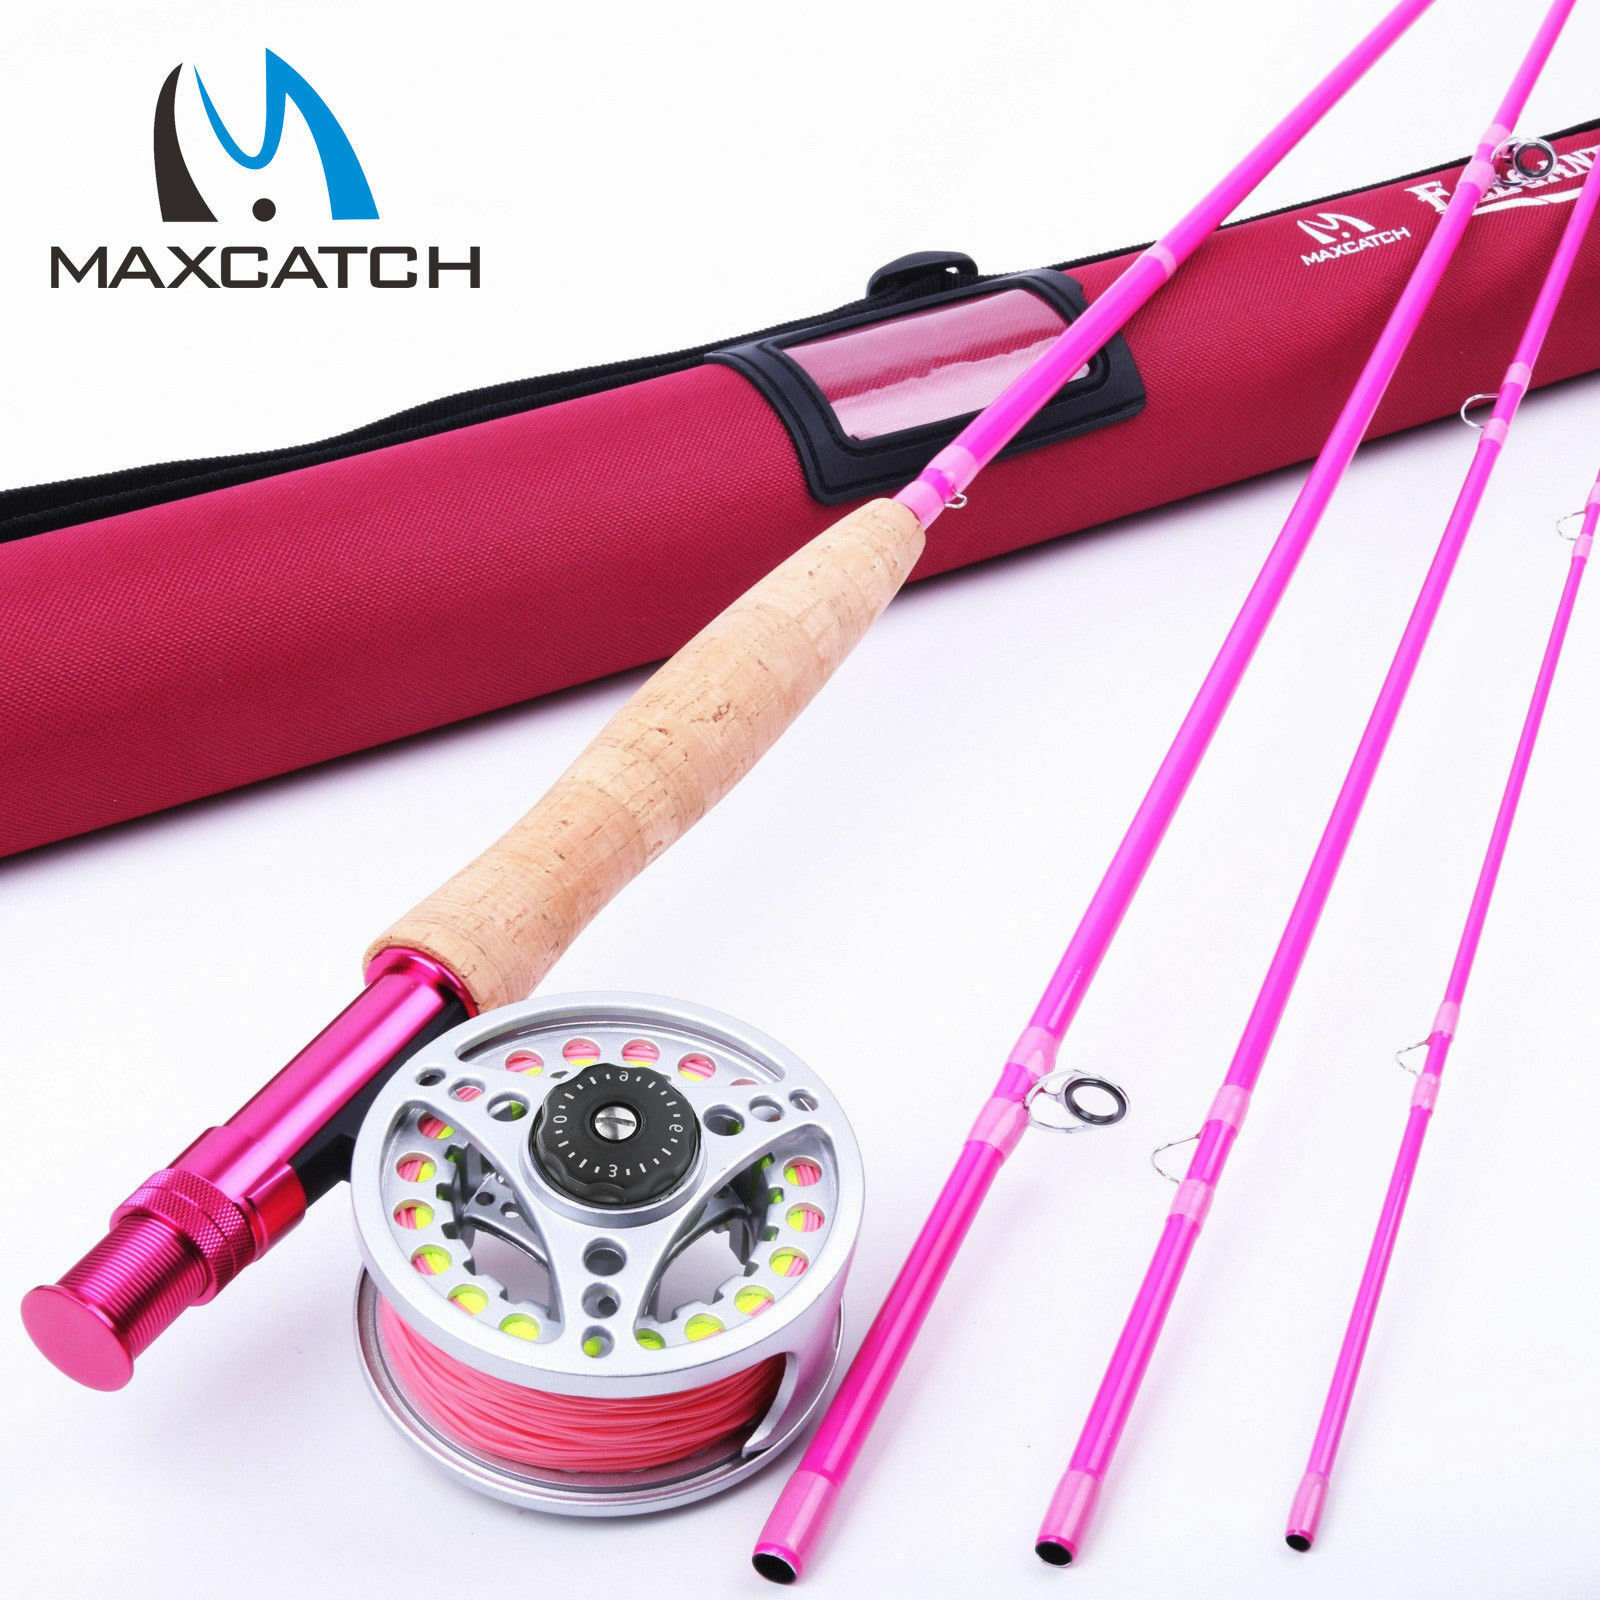 Maxcatch Hot Pink Fly Rod  and Reel Combo Kit 5WT 9FT YOUTH FLY FISHING Fly Line  fashionable